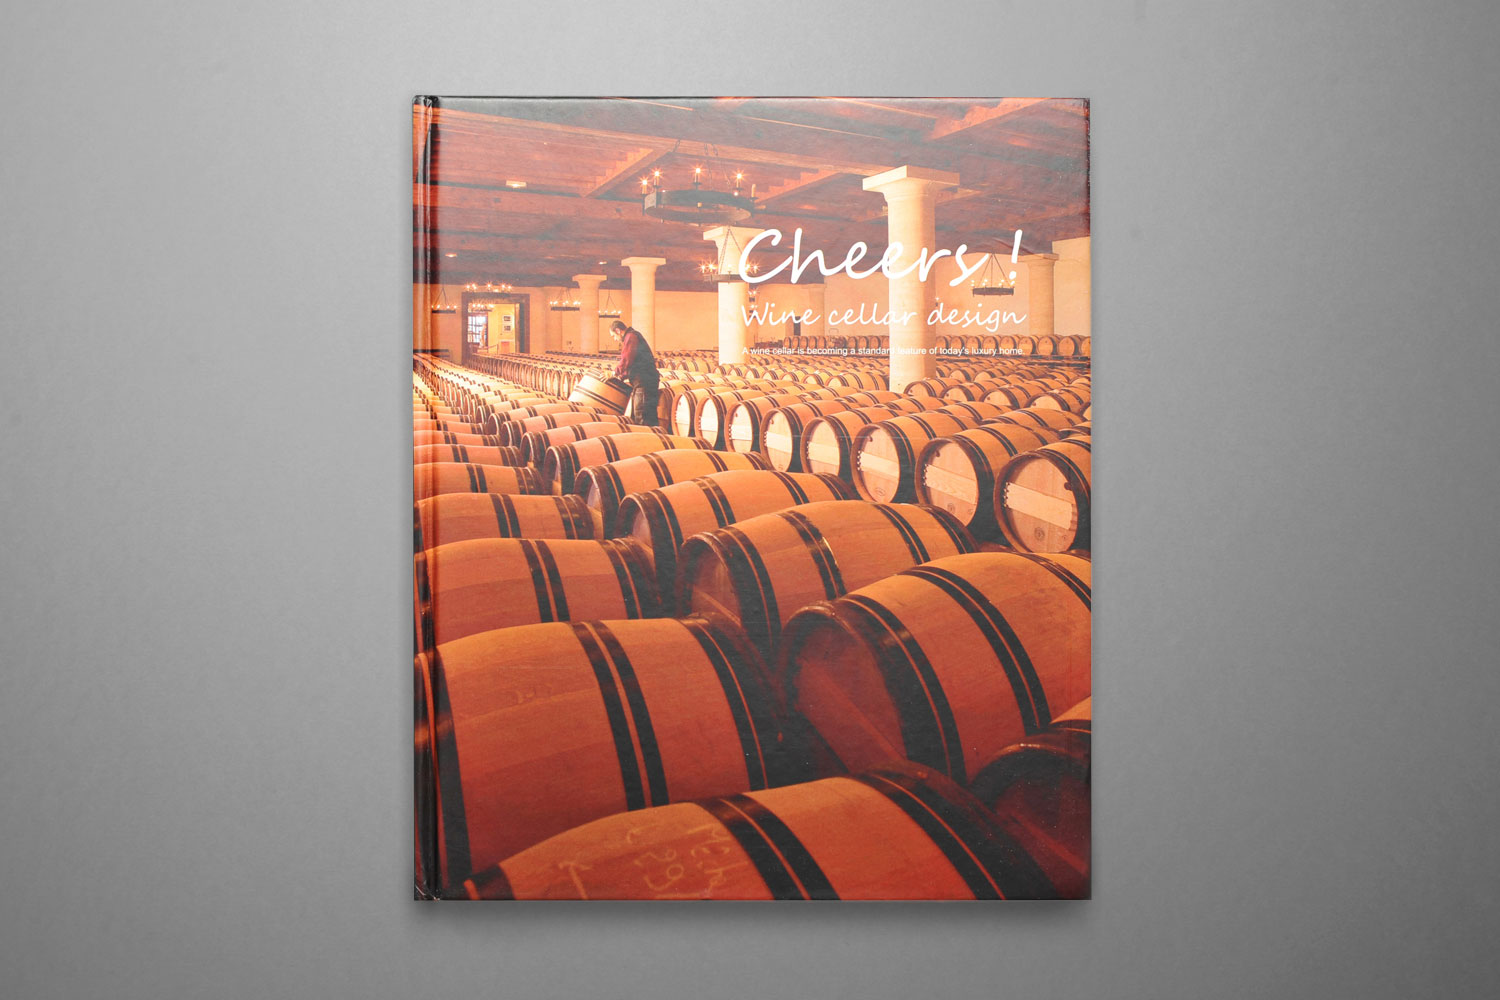 Cheers! Wine Cellar Design - Artpower Publishing2012ISBN-10 : 9881574358ISBN-13 : 978-9881574350